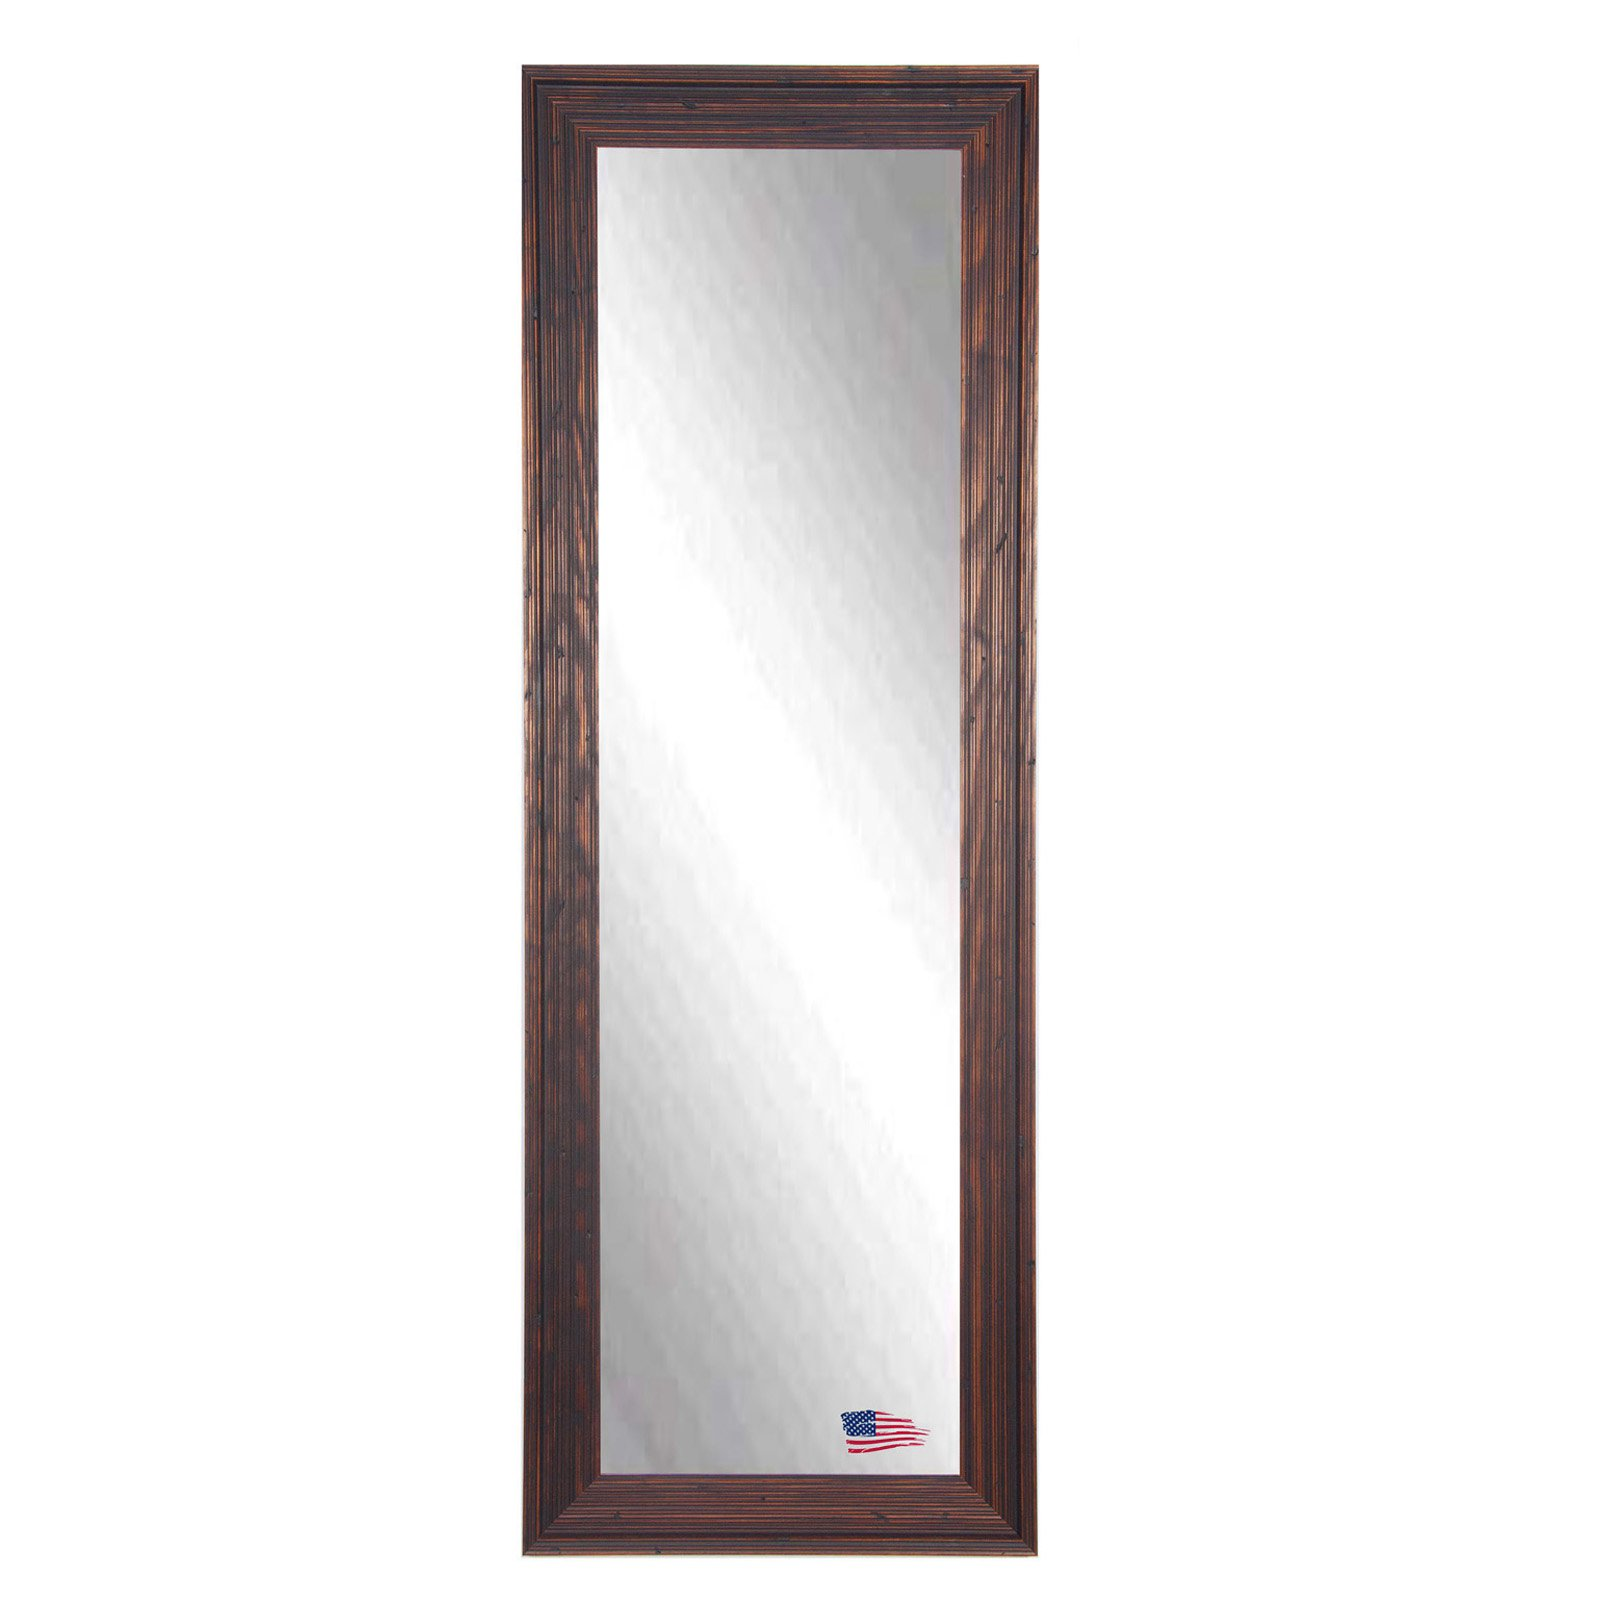 Rayne Mirrors Barnwood Brown Full Length Body Wall Mirror. Kitchen Under Cabinet Lighting Led. What Color Should I Paint My Kitchen Cabinets. Cost To Install New Kitchen Cabinets. Kitchen Cabinets Fort Lauderdale. Solid Wood Replacement Kitchen Cabinet Doors. Modern Kitchen Cabinet. Where To Place Knobs On Kitchen Cabinets. Colors For Kitchen Cabinets And Walls